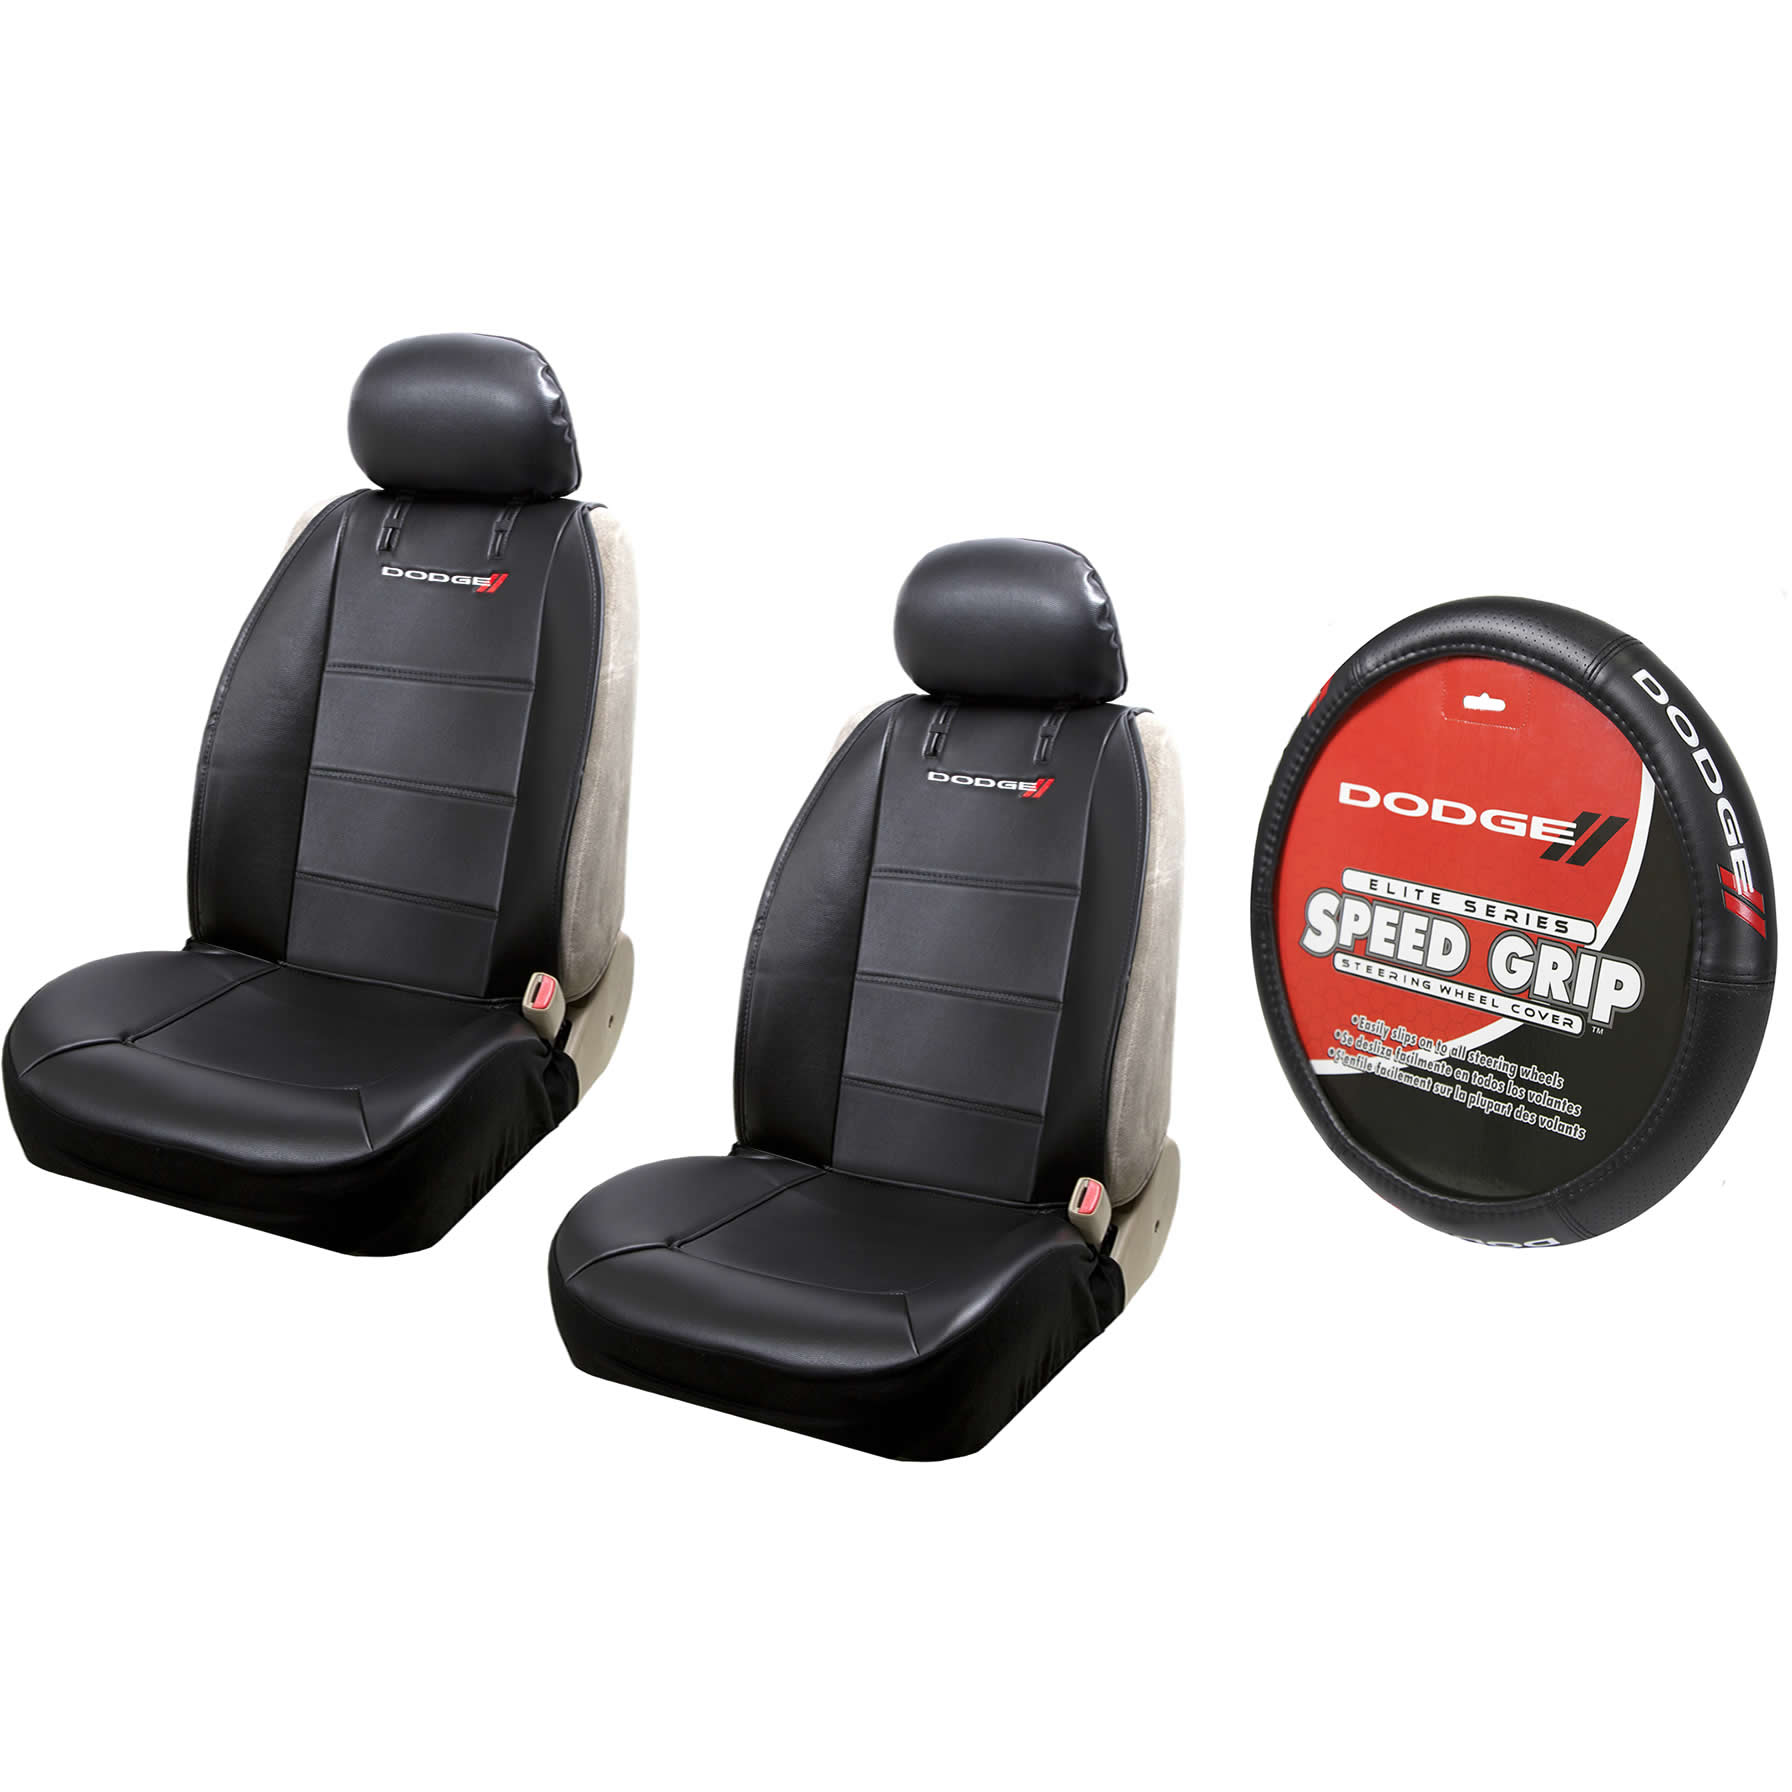 2 Dodge Elite Synthetic Leather Sideless Seat Covers & Steering Wheel Cover Set Car Truck SUV